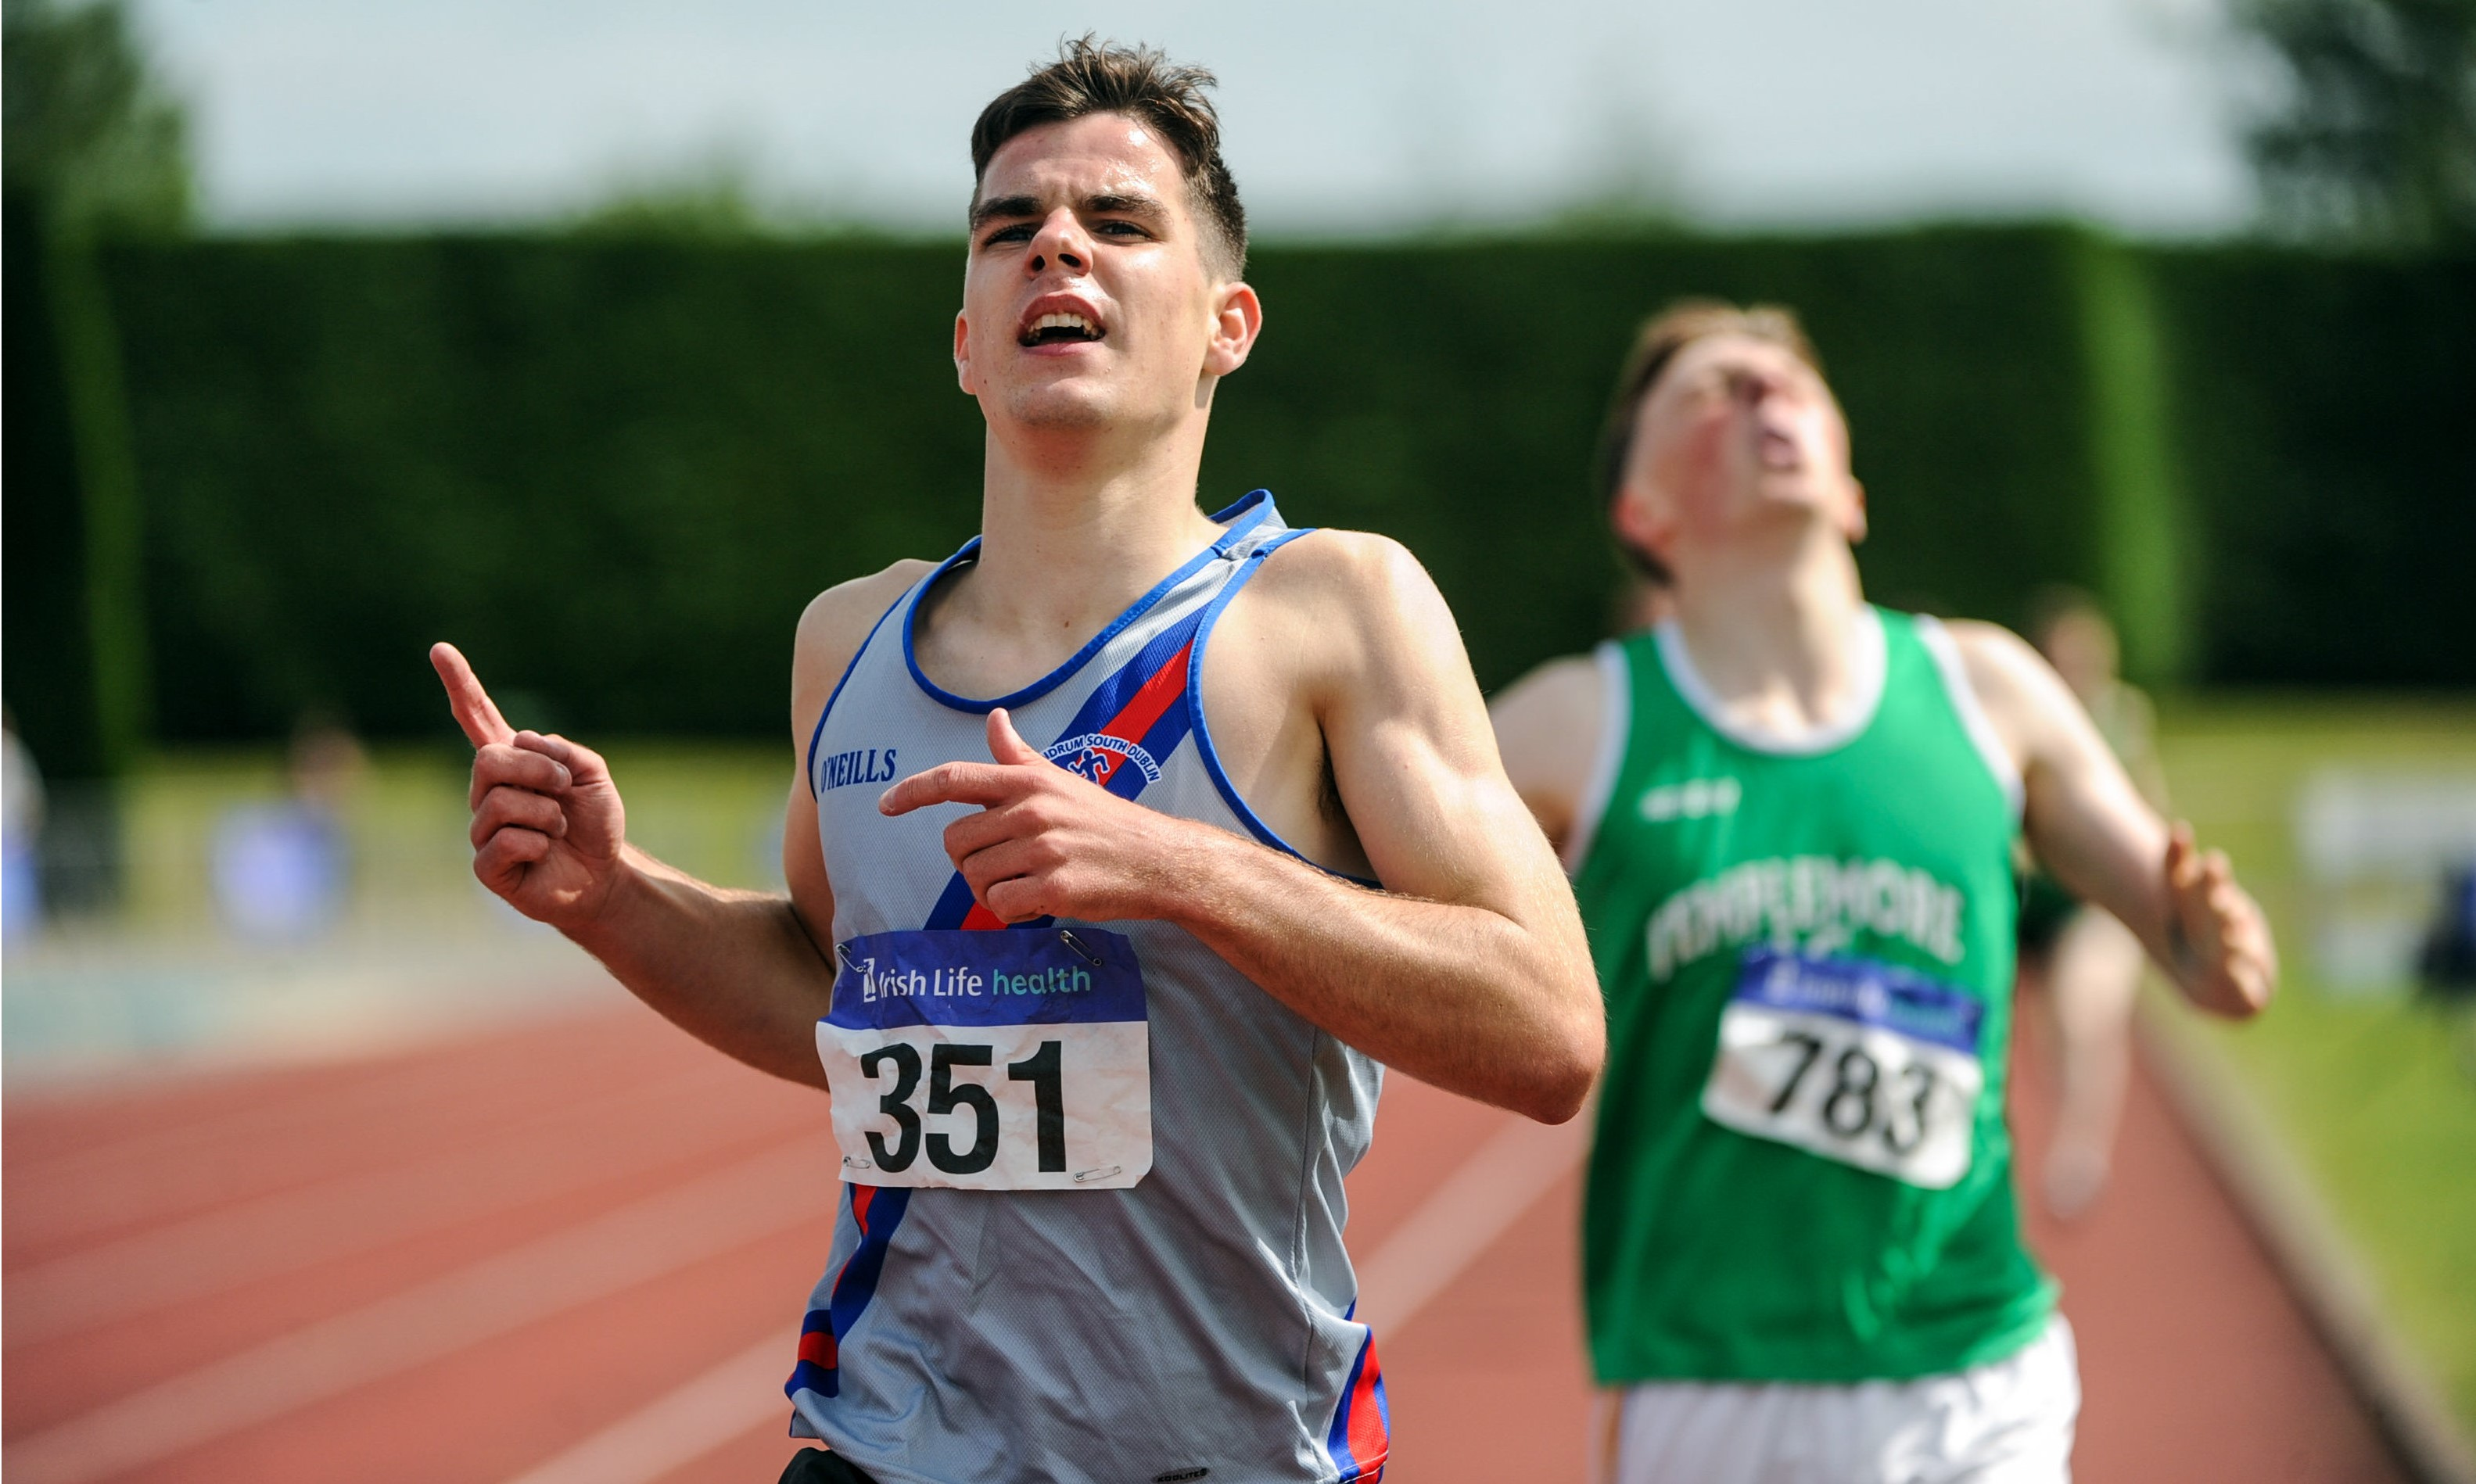 Irish Life Health National Track & Field Juvenile Entry Lists